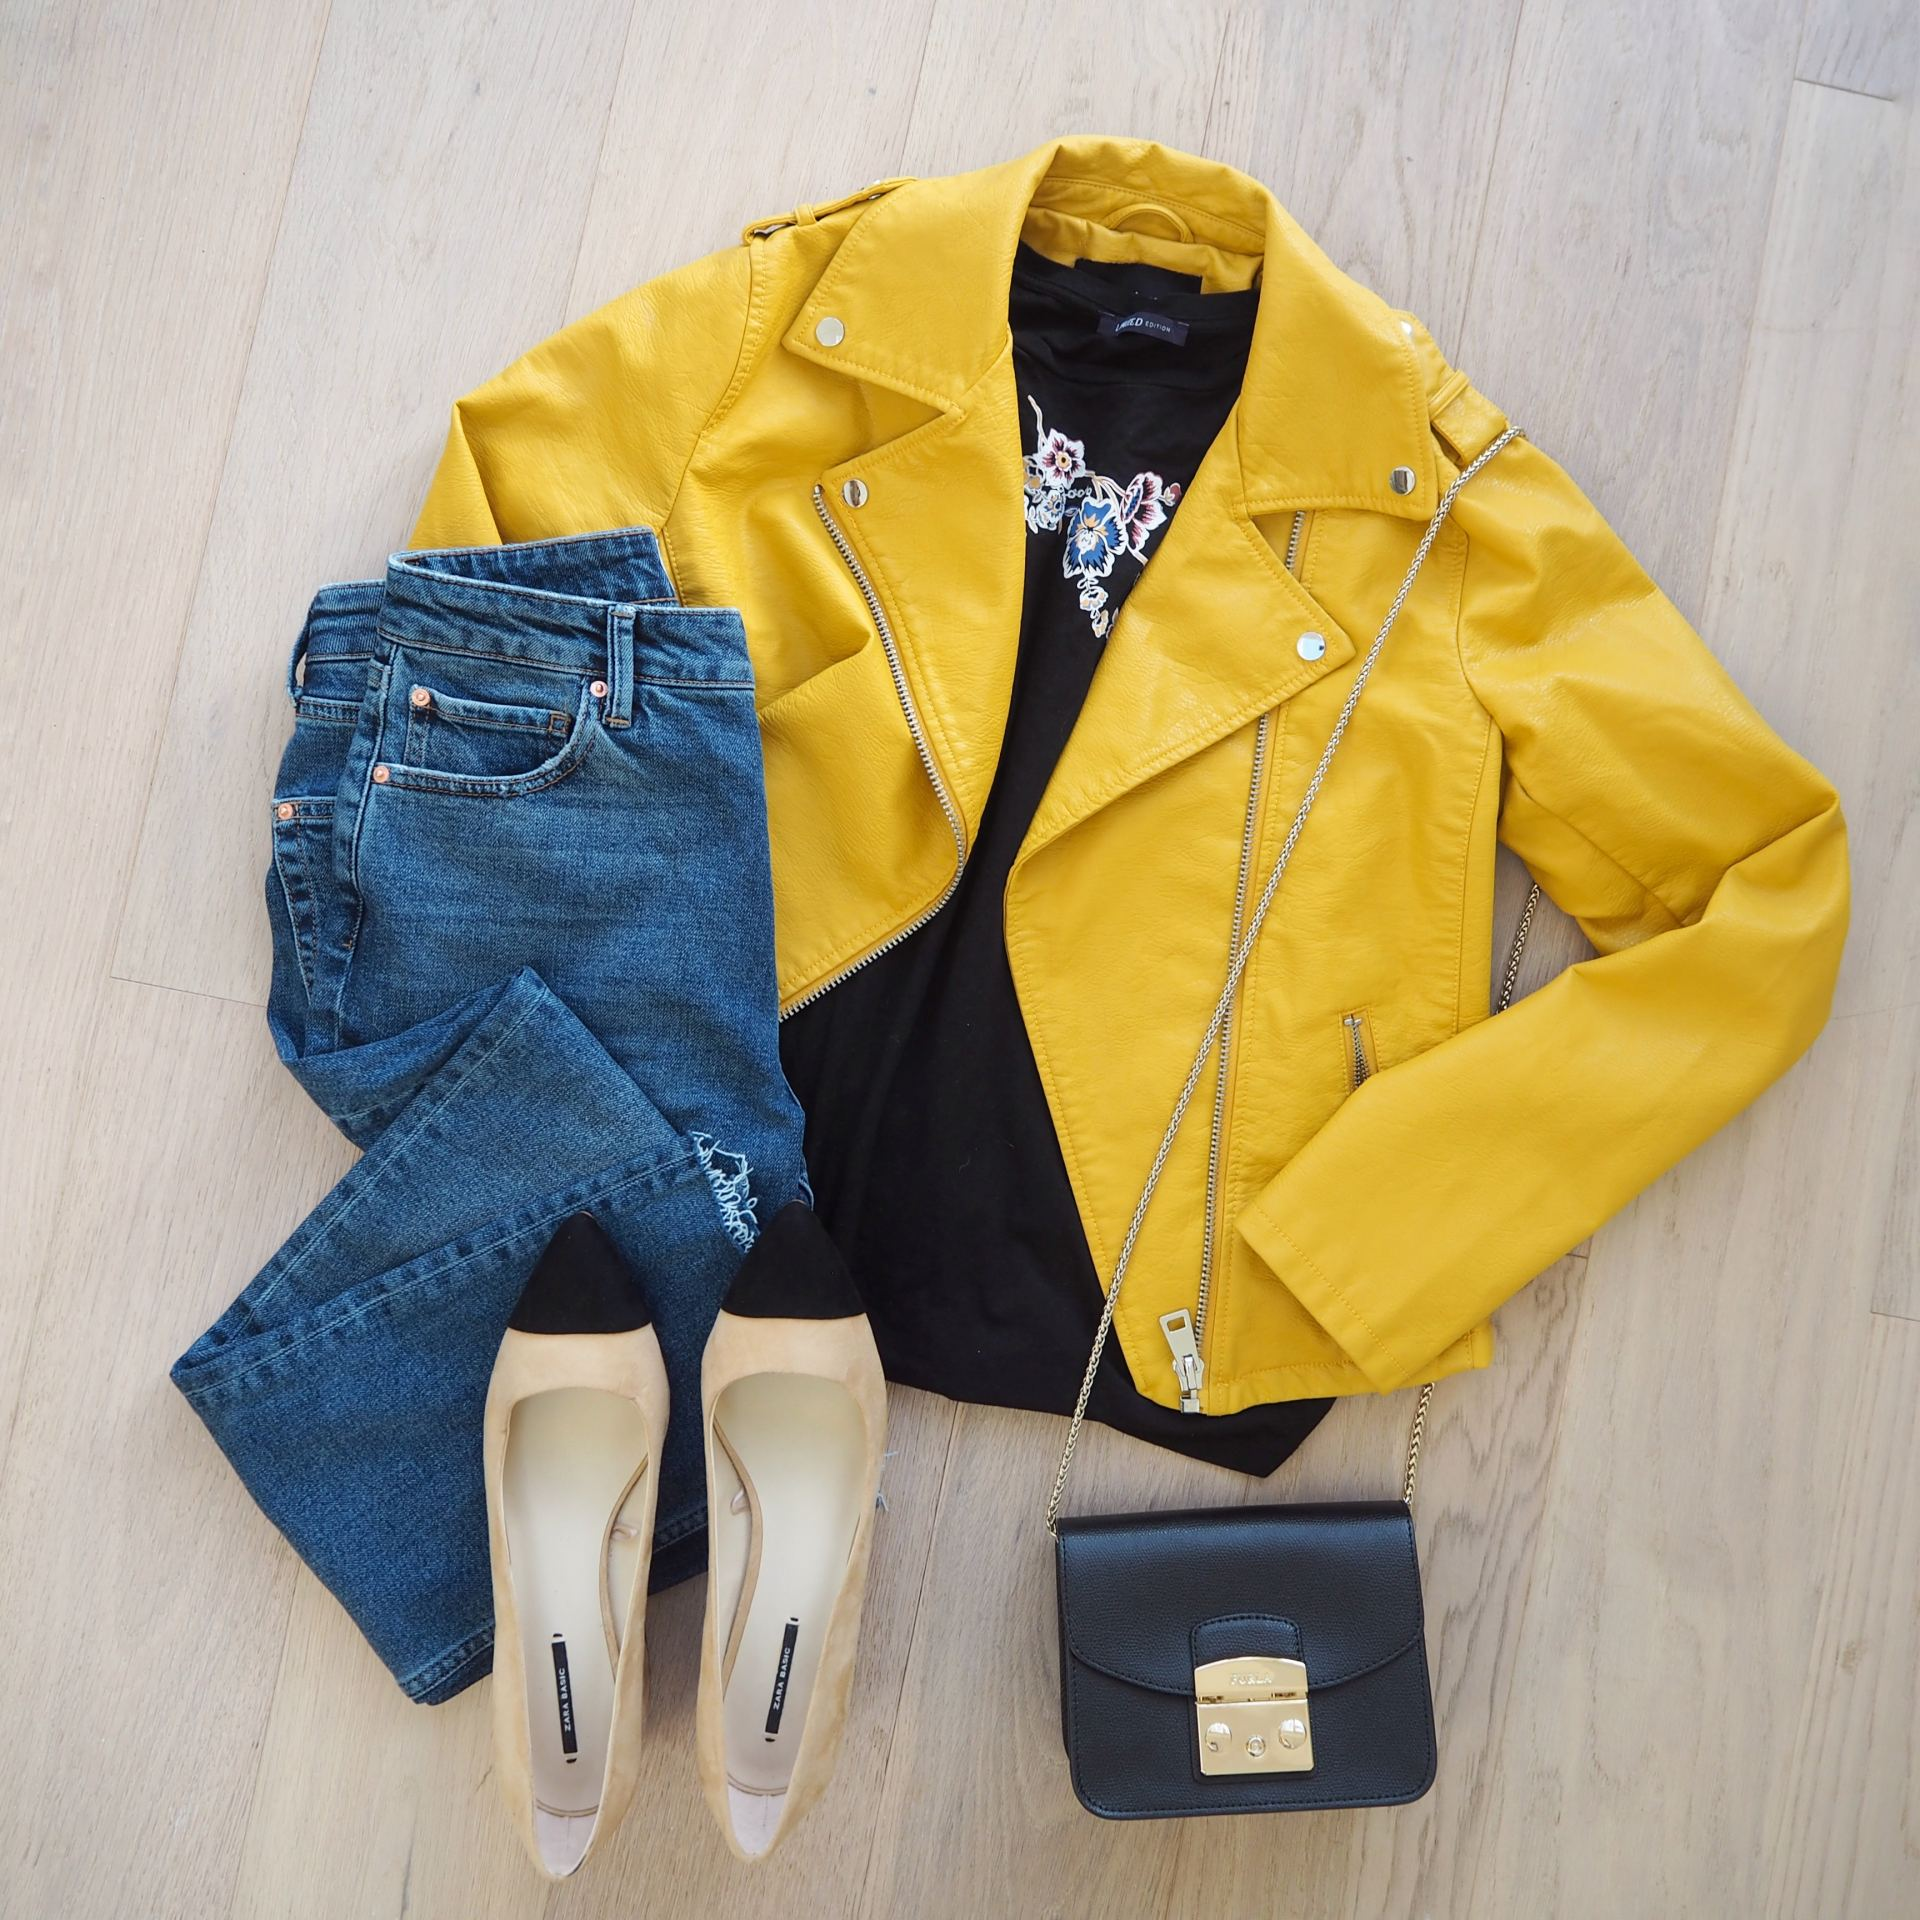 outfit flatlay tips